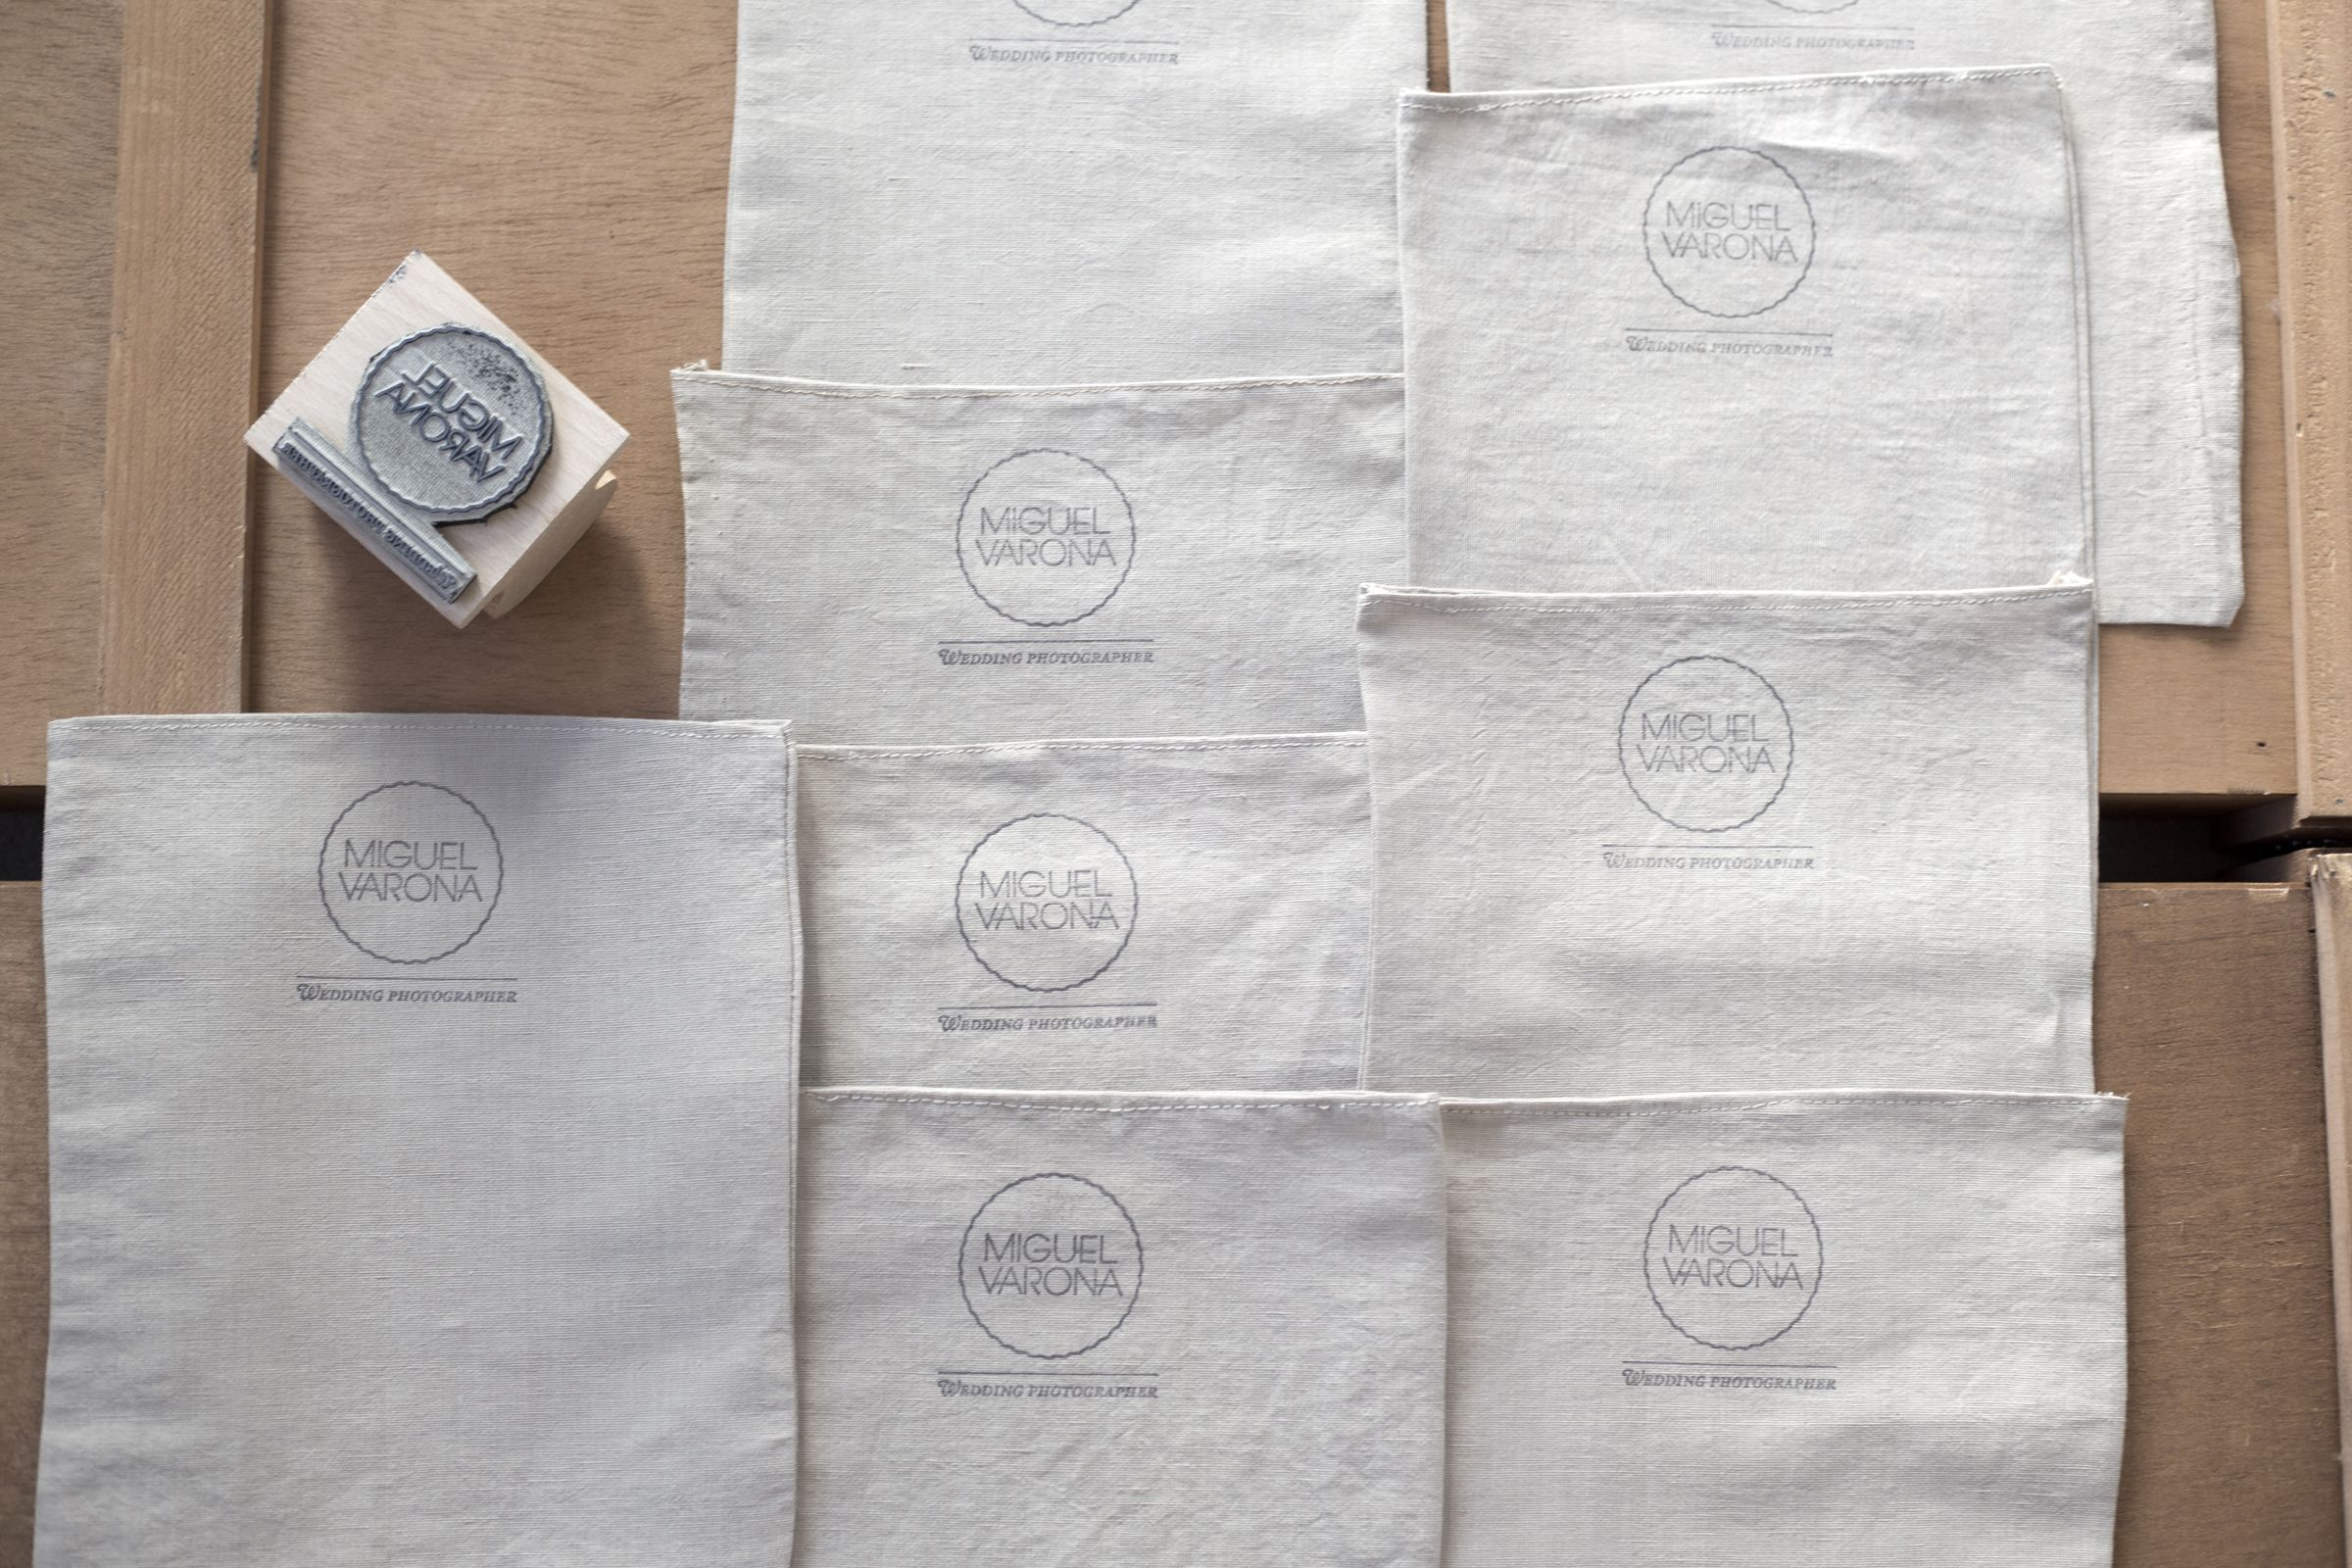 Wedding packaging for Miguel Varona / by ChairYourLife